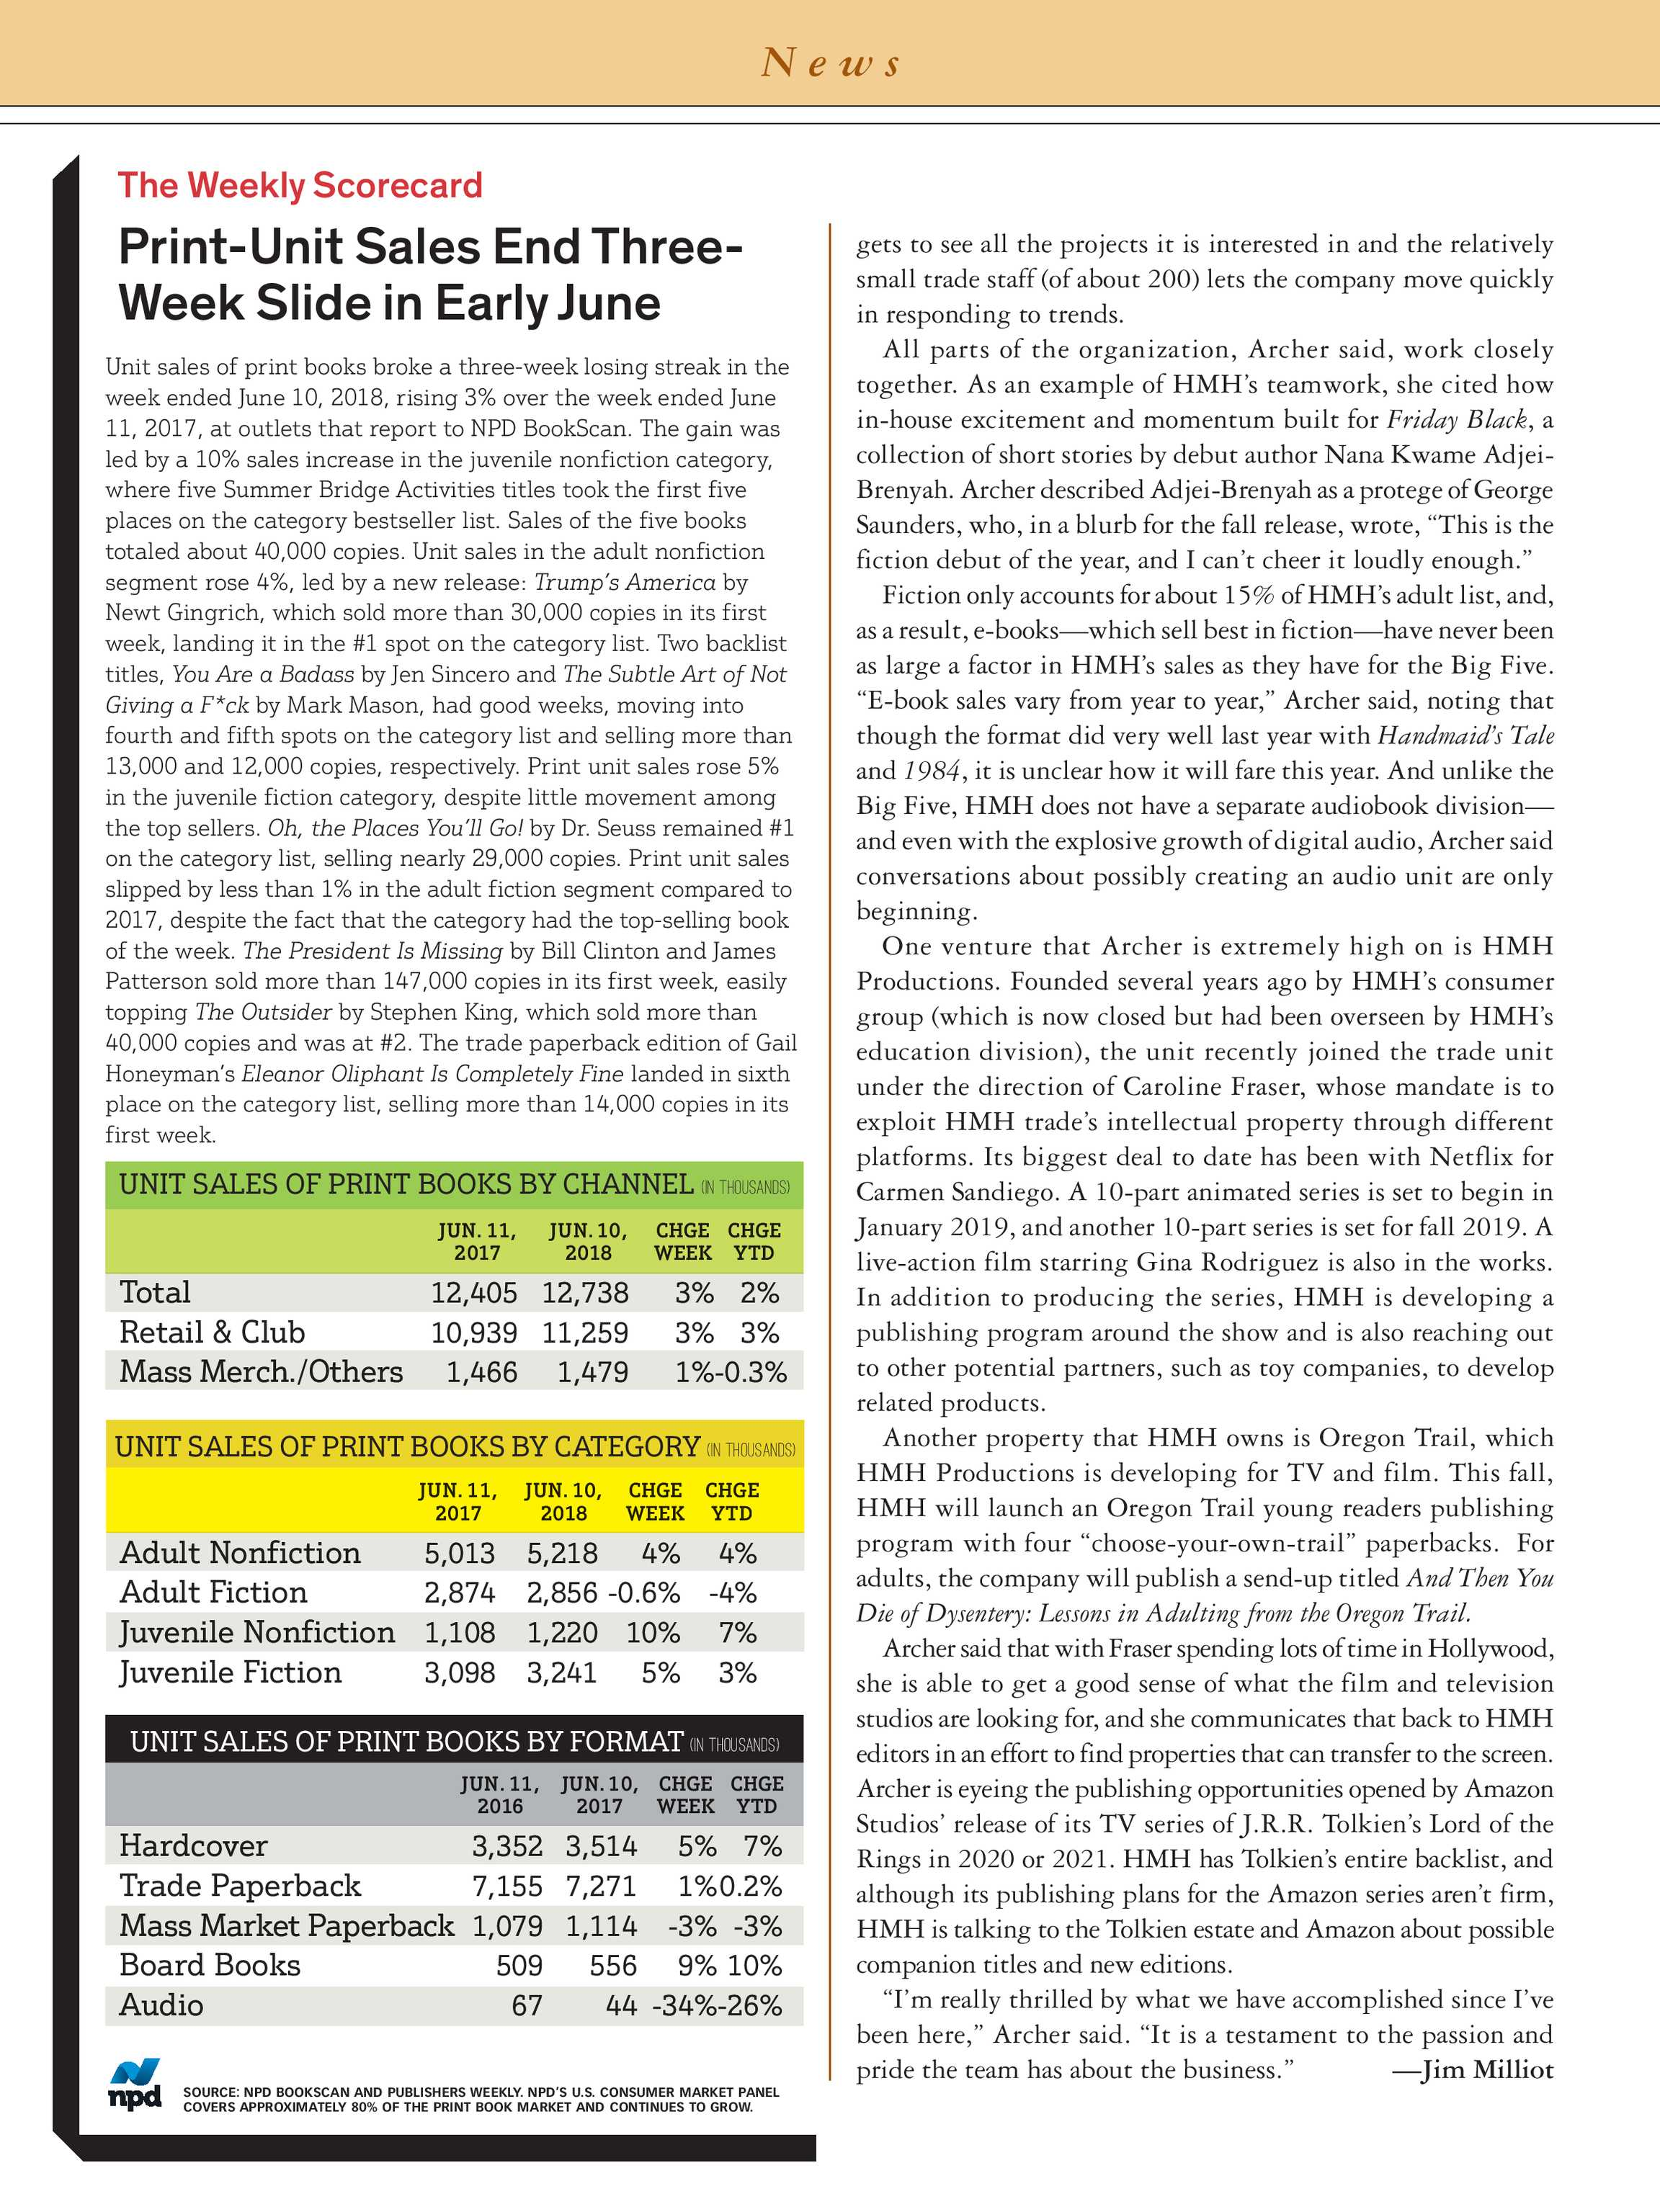 Publishers Weekly - June 18, 2018 - page 8